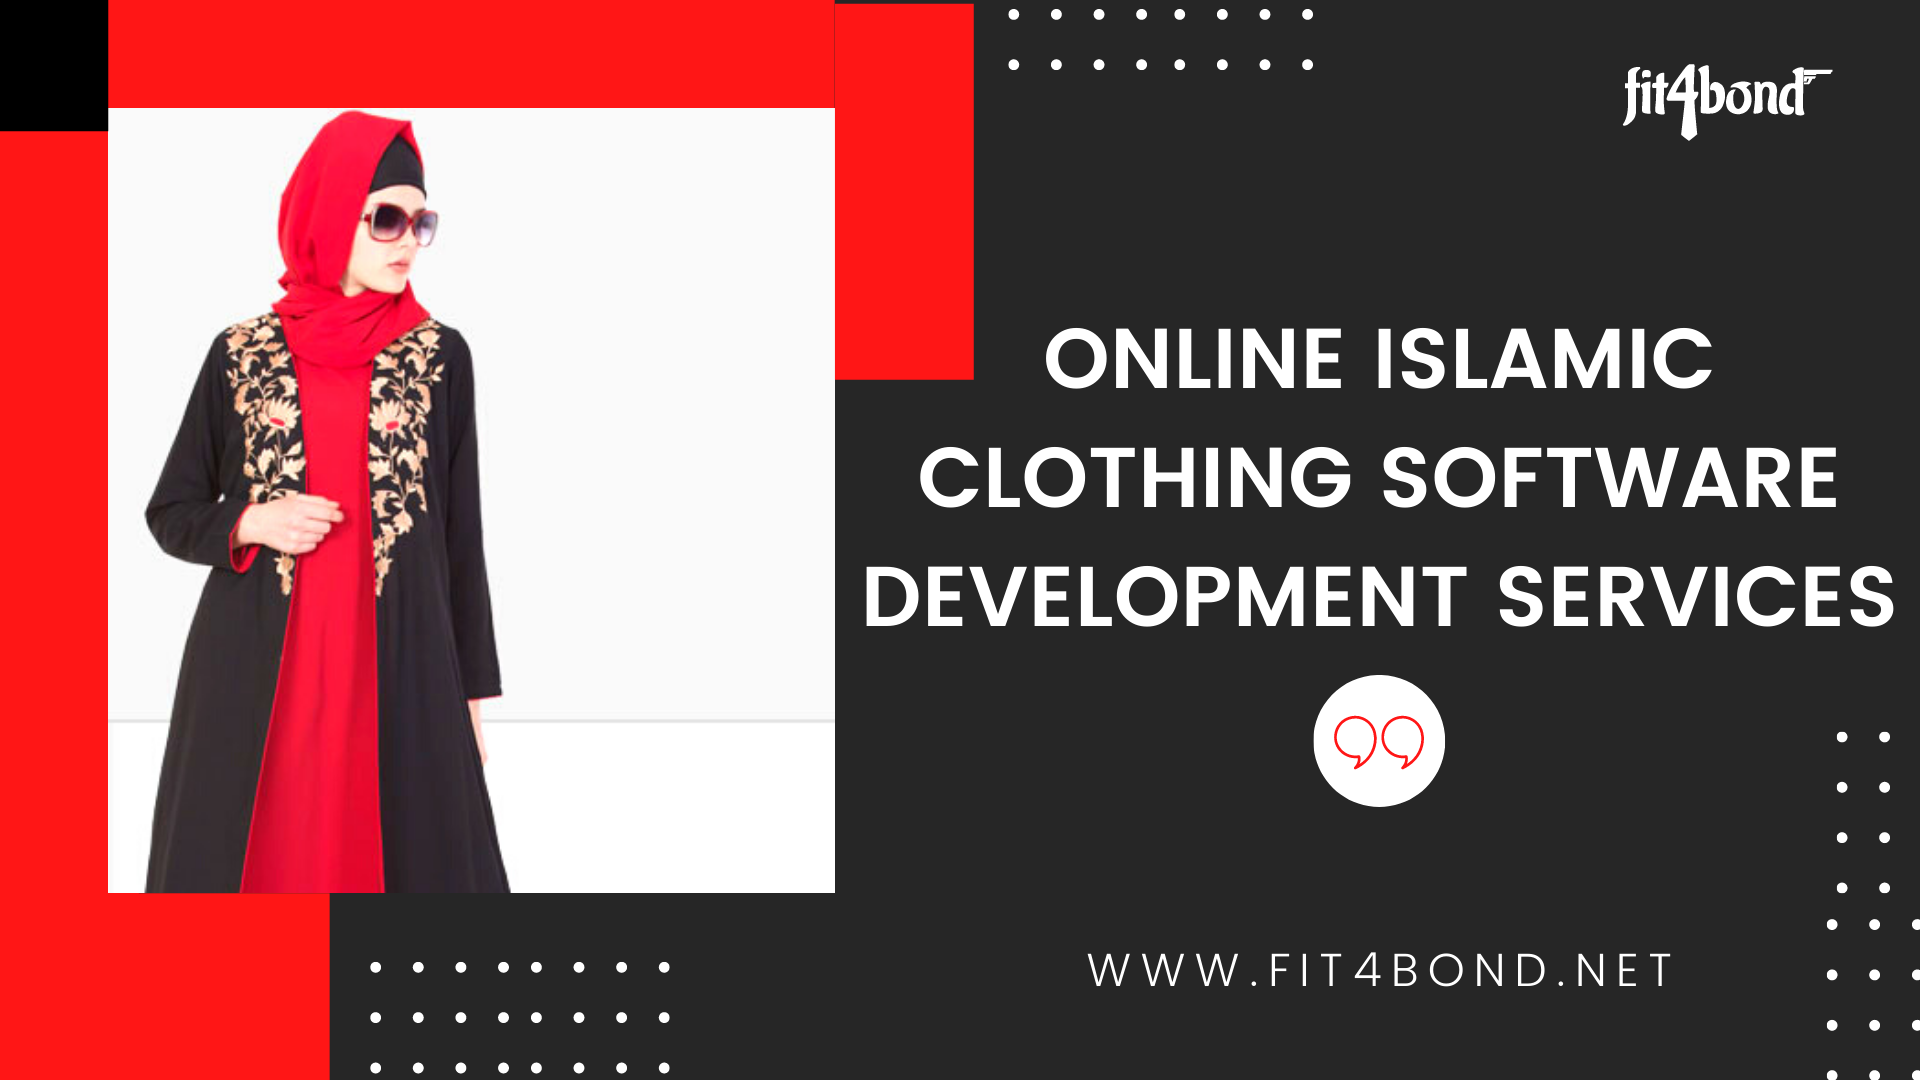 Online Islamic Clothing Software Development Services | Fit4Bond